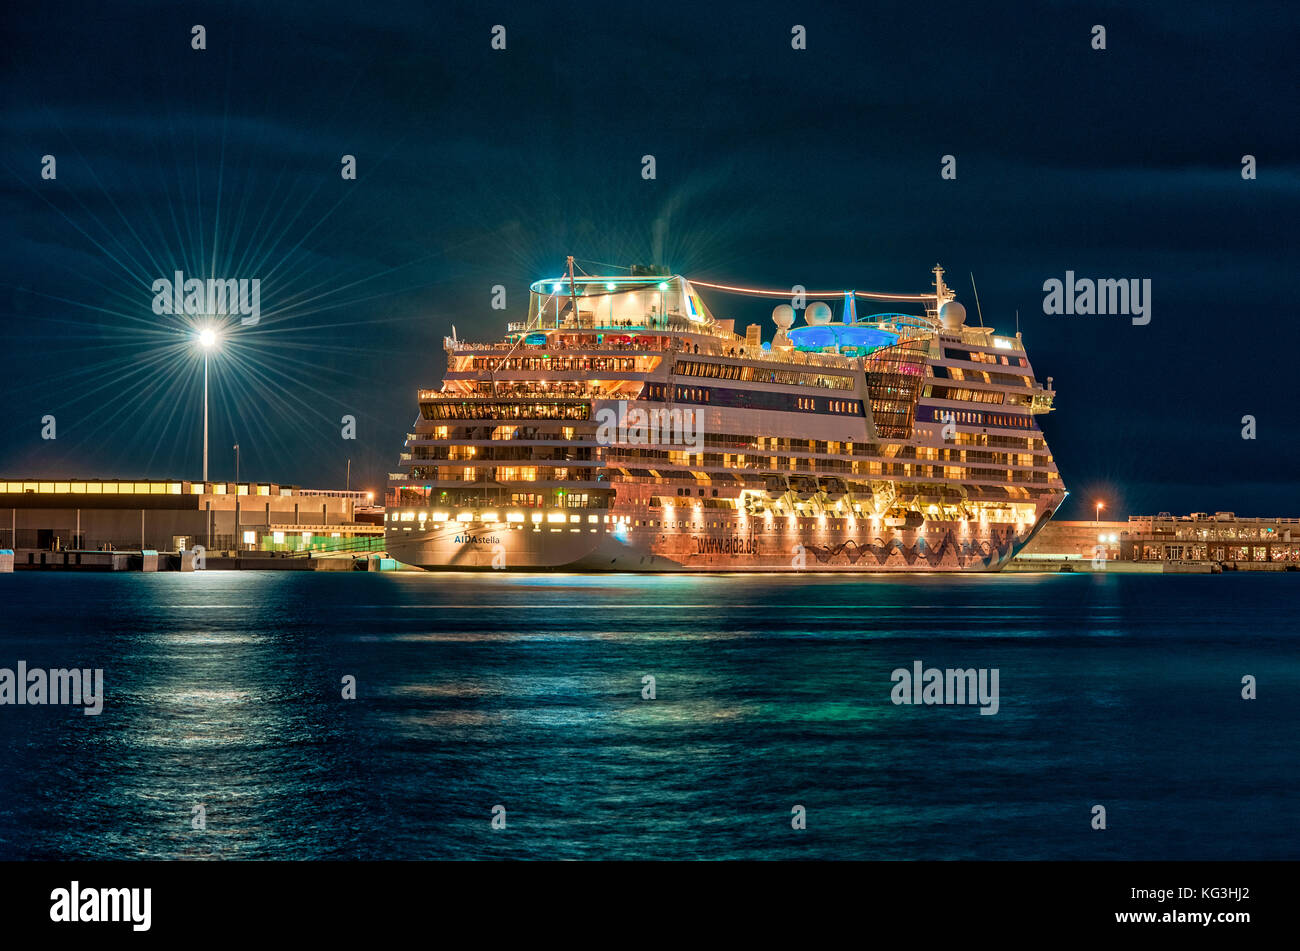 AIDA Stella cruise ship docked in Palma port, Palma de Majorca, Balearic Islands,  Spain. Stock Photo